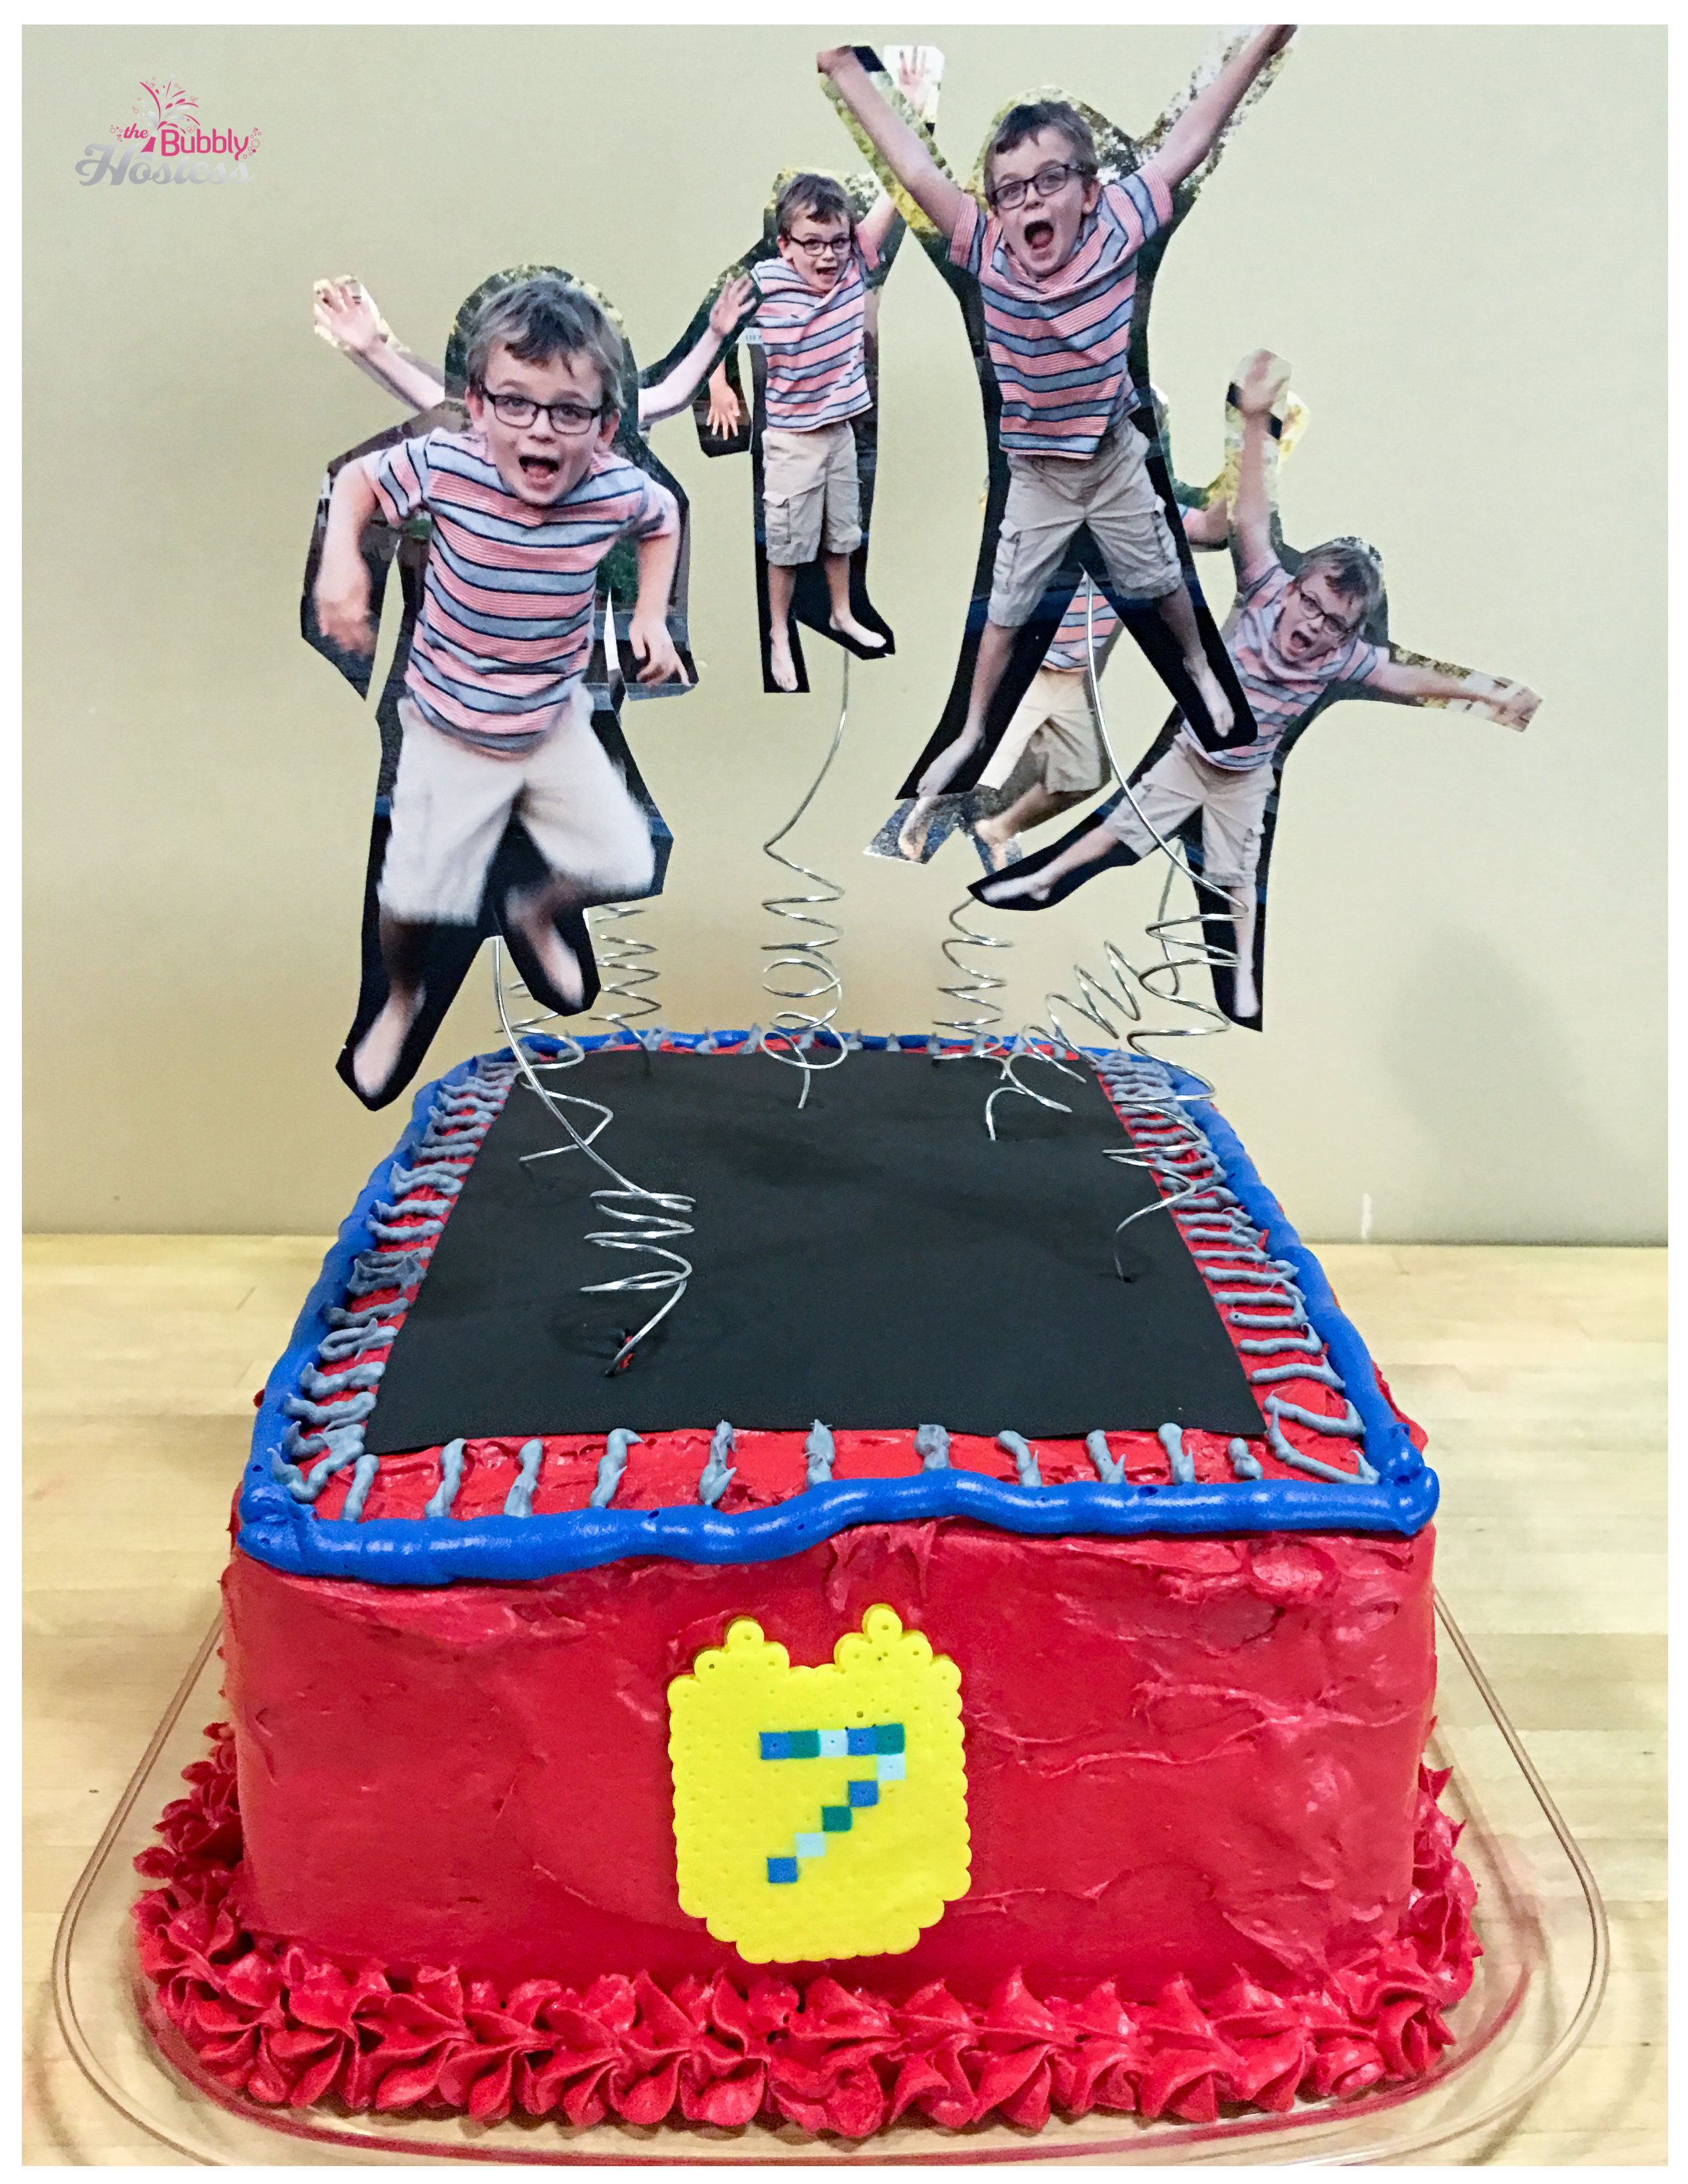 Trampoline Birthday Cake | The Bubbly Hostess